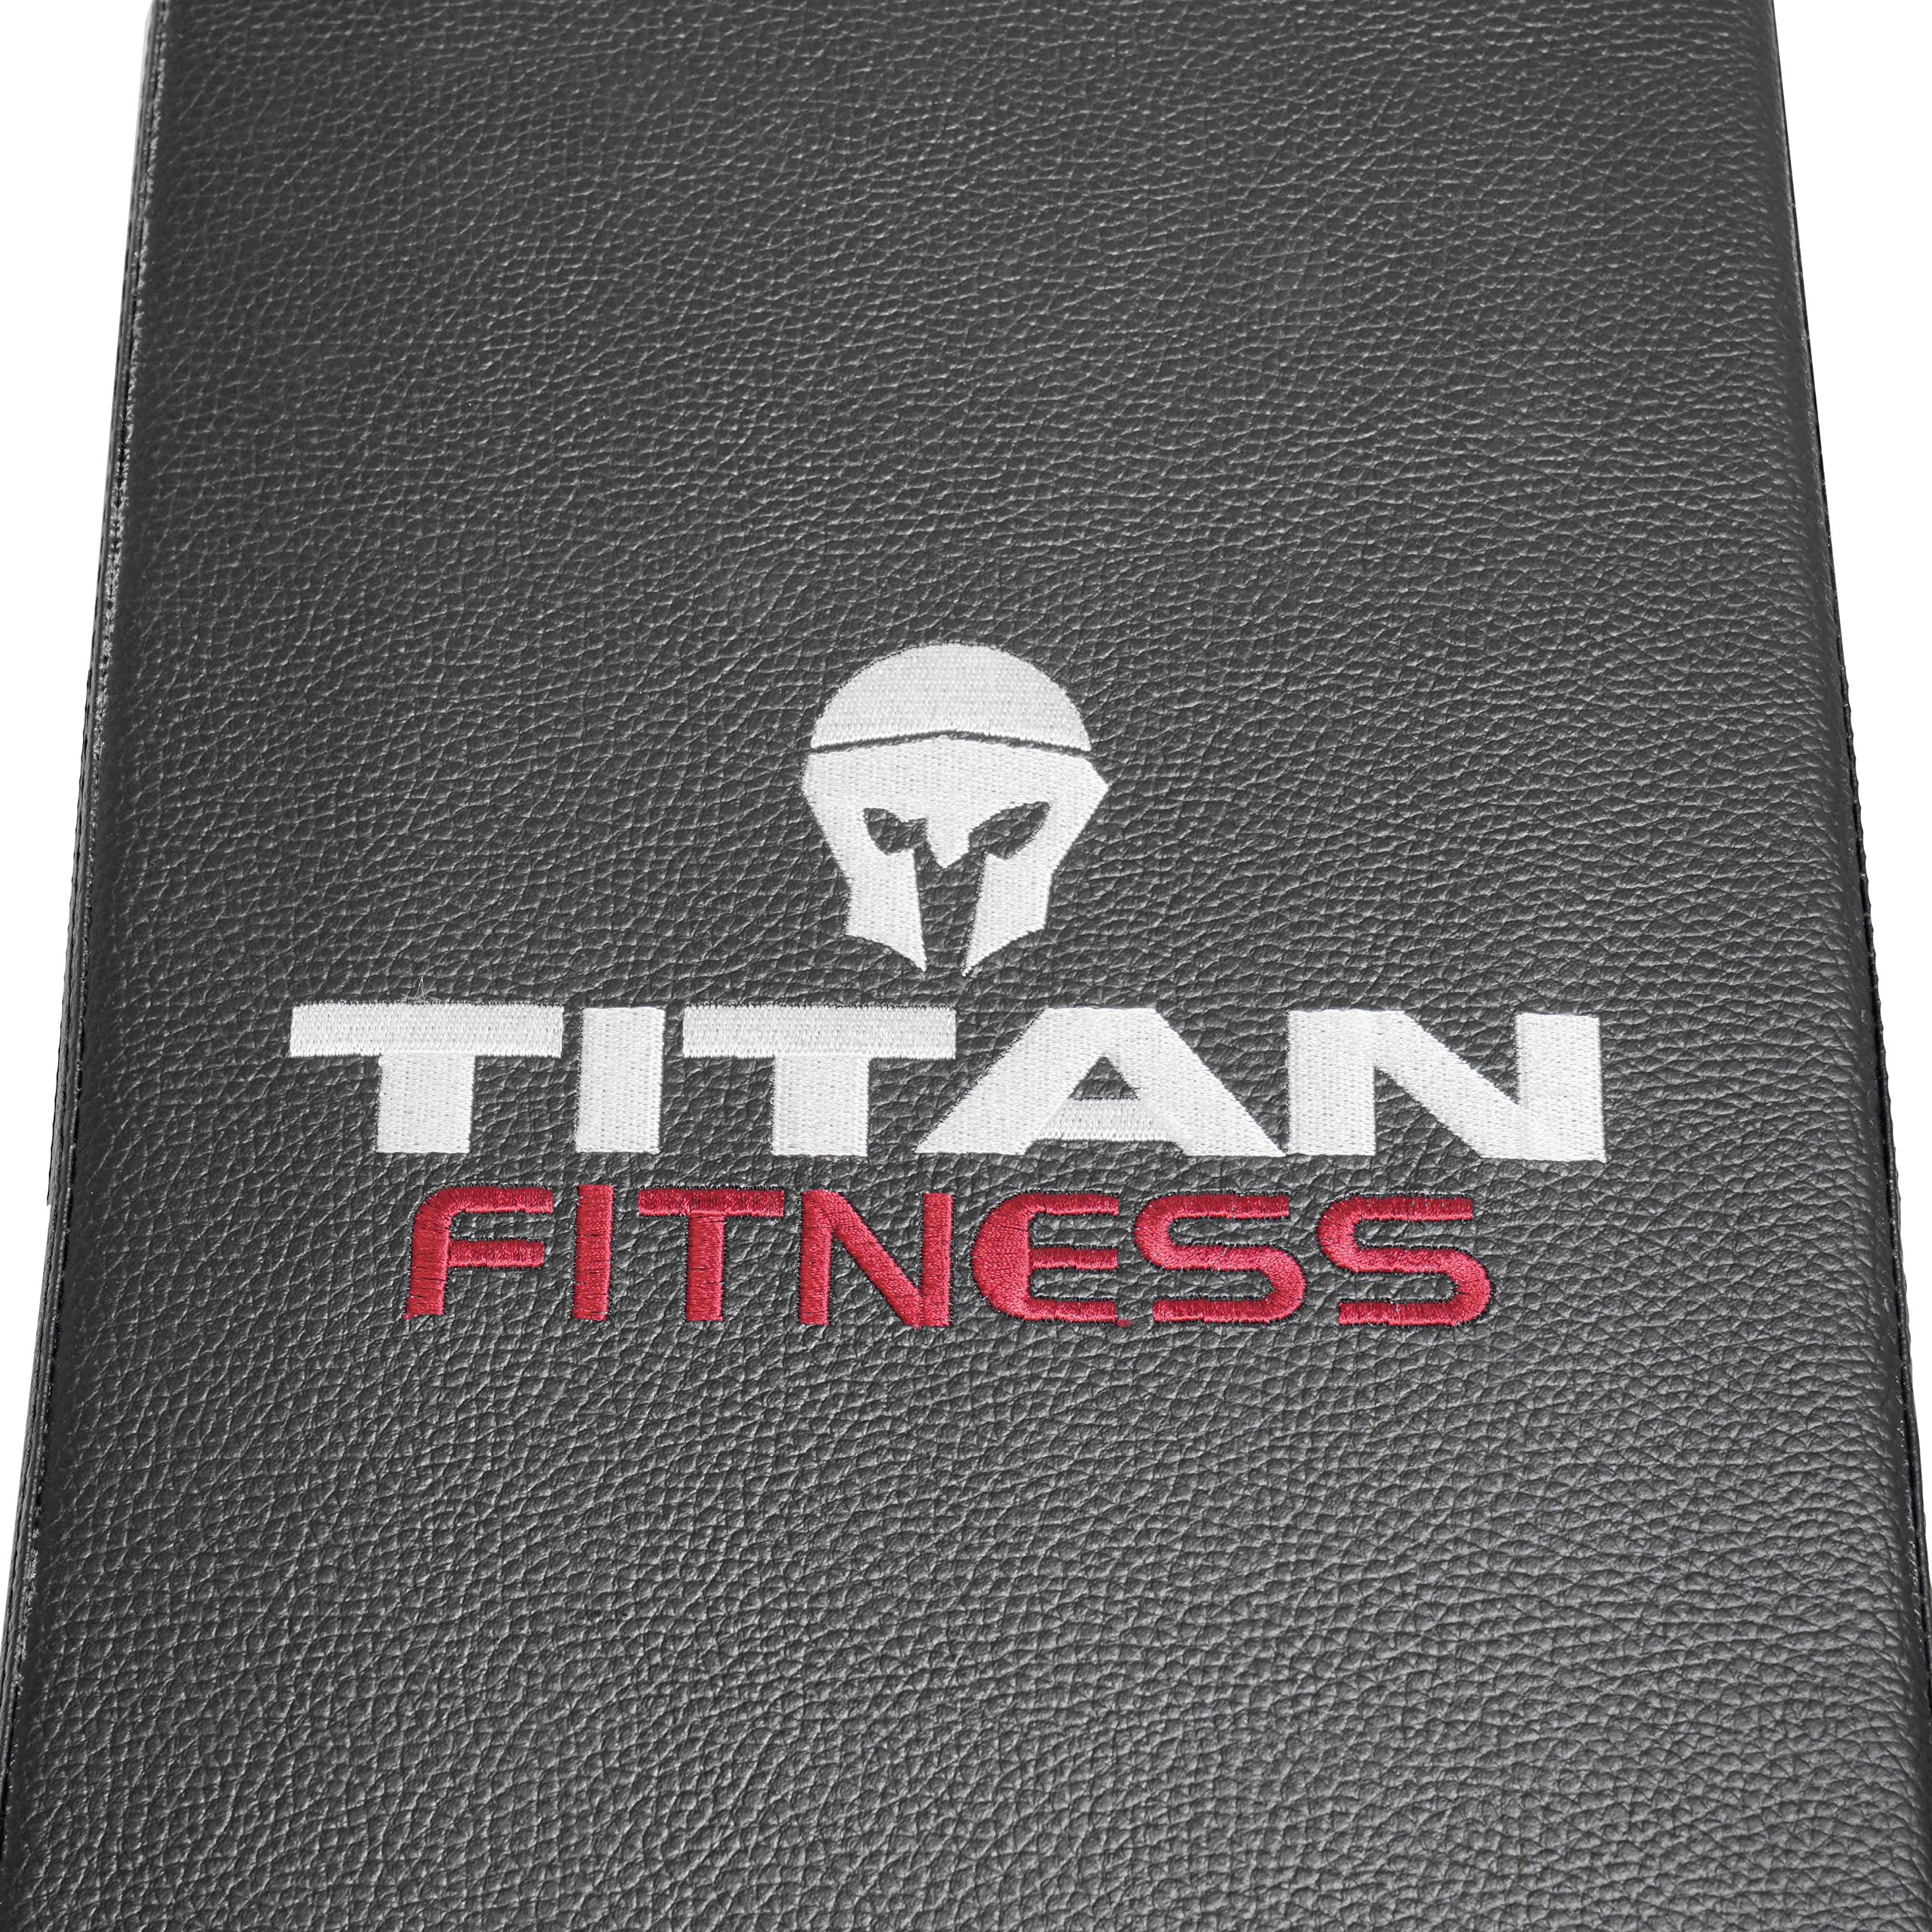 Titan Fitness Flat Weight Bench 1,000 lb Rated Capacity w/ Handle & Wheels by Titan Fitness (Image #6)